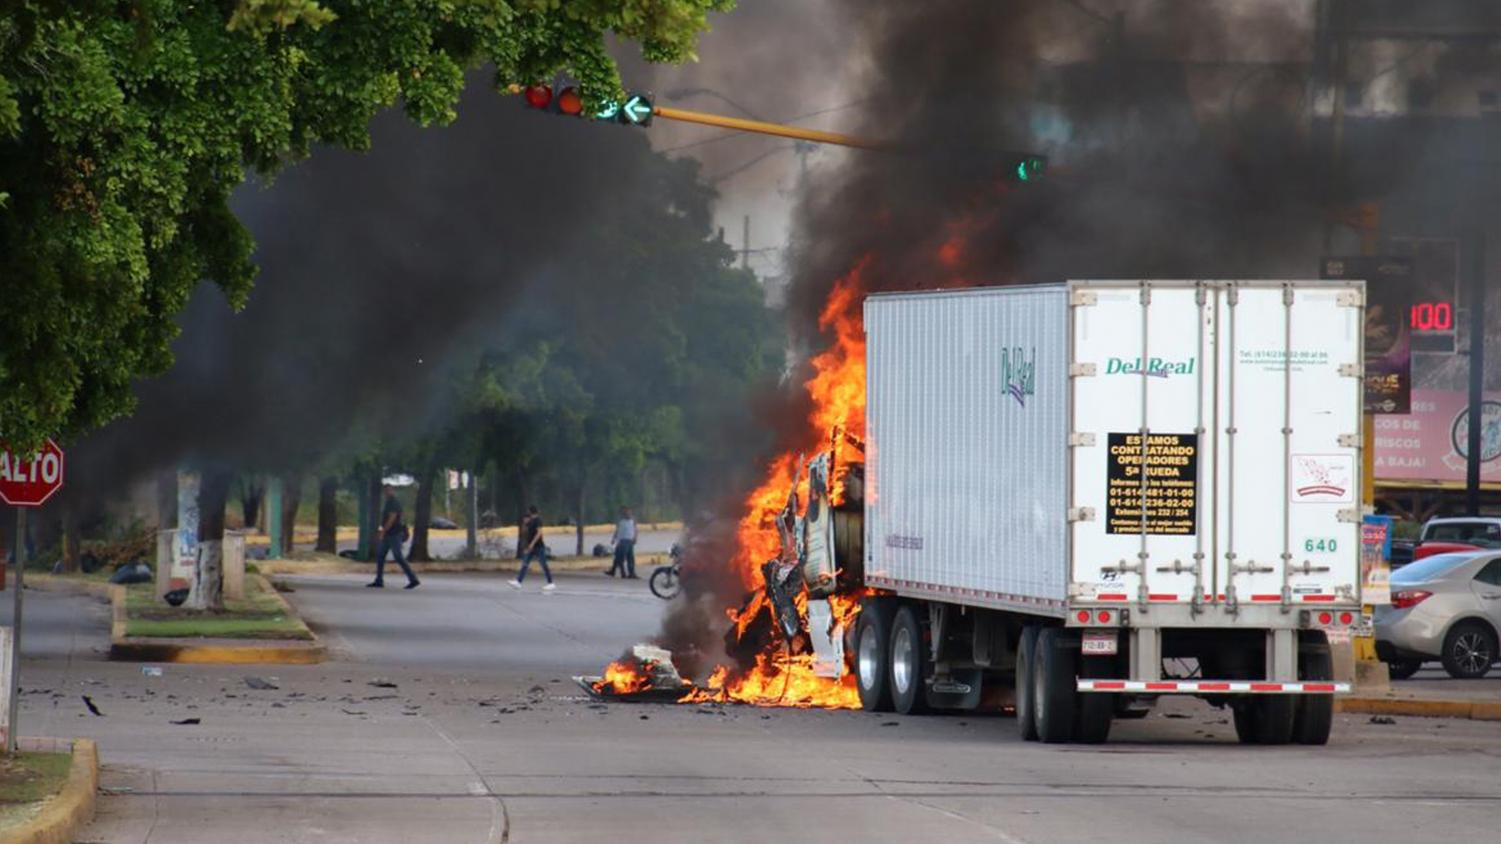 Cars burn in the street as fighting rages.